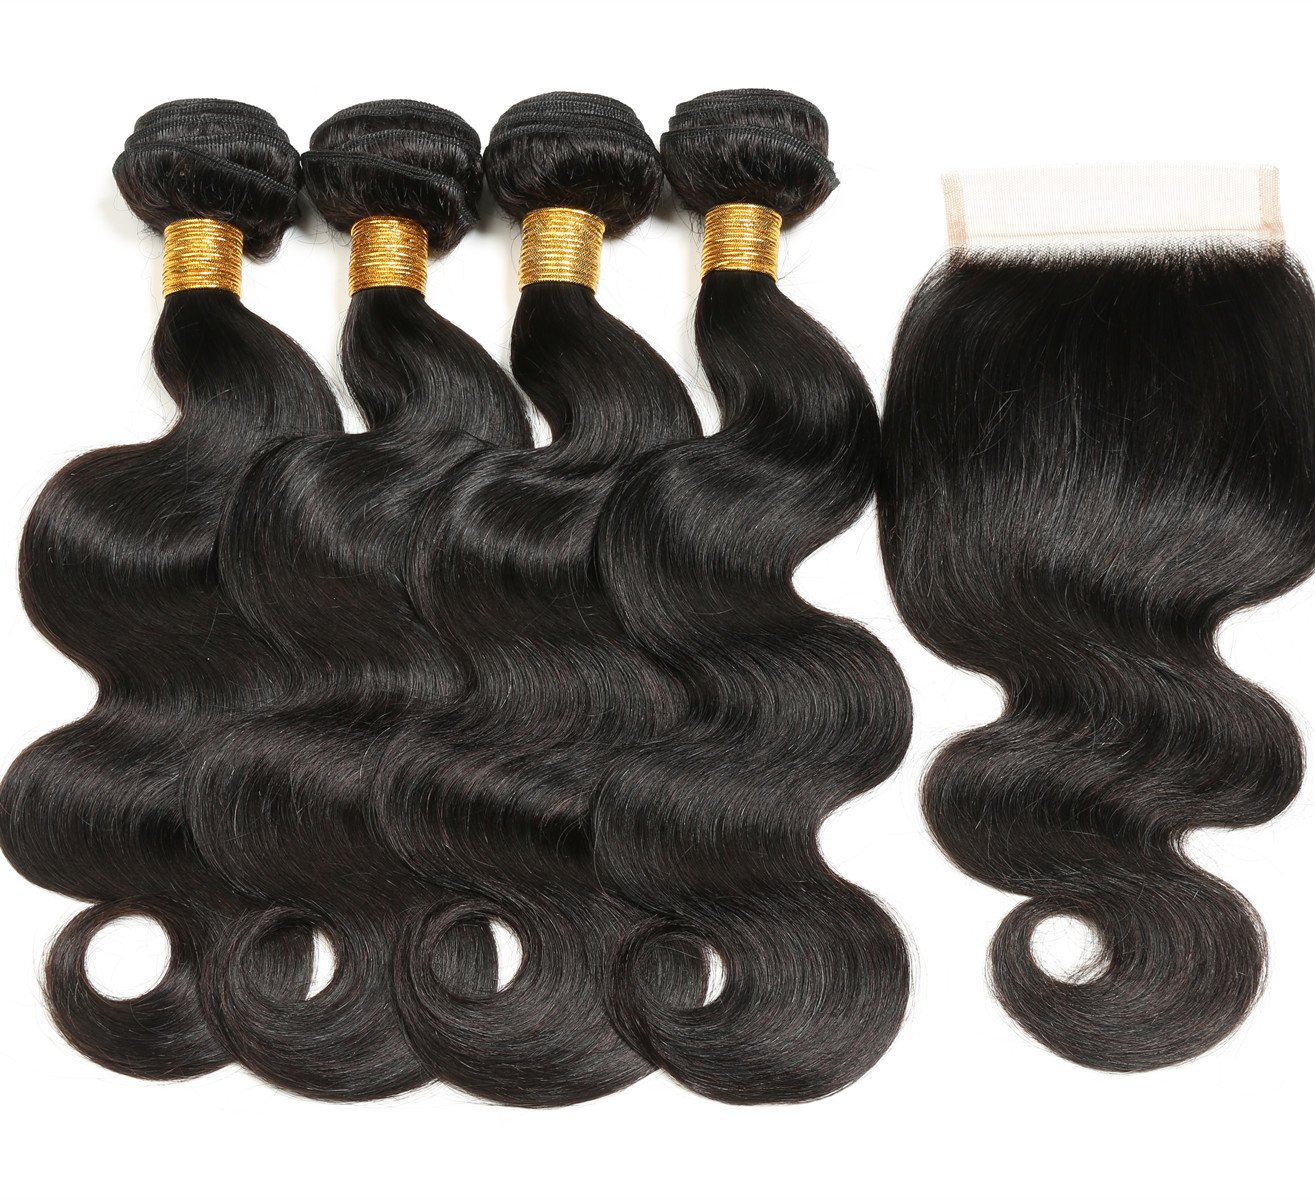 RUIMEISI 8A Brazilian Virgin Hair 4 Bundles with Closure 100% Unprocessed Human Hair Weave With Lace Closure (18 20 22 22+18)